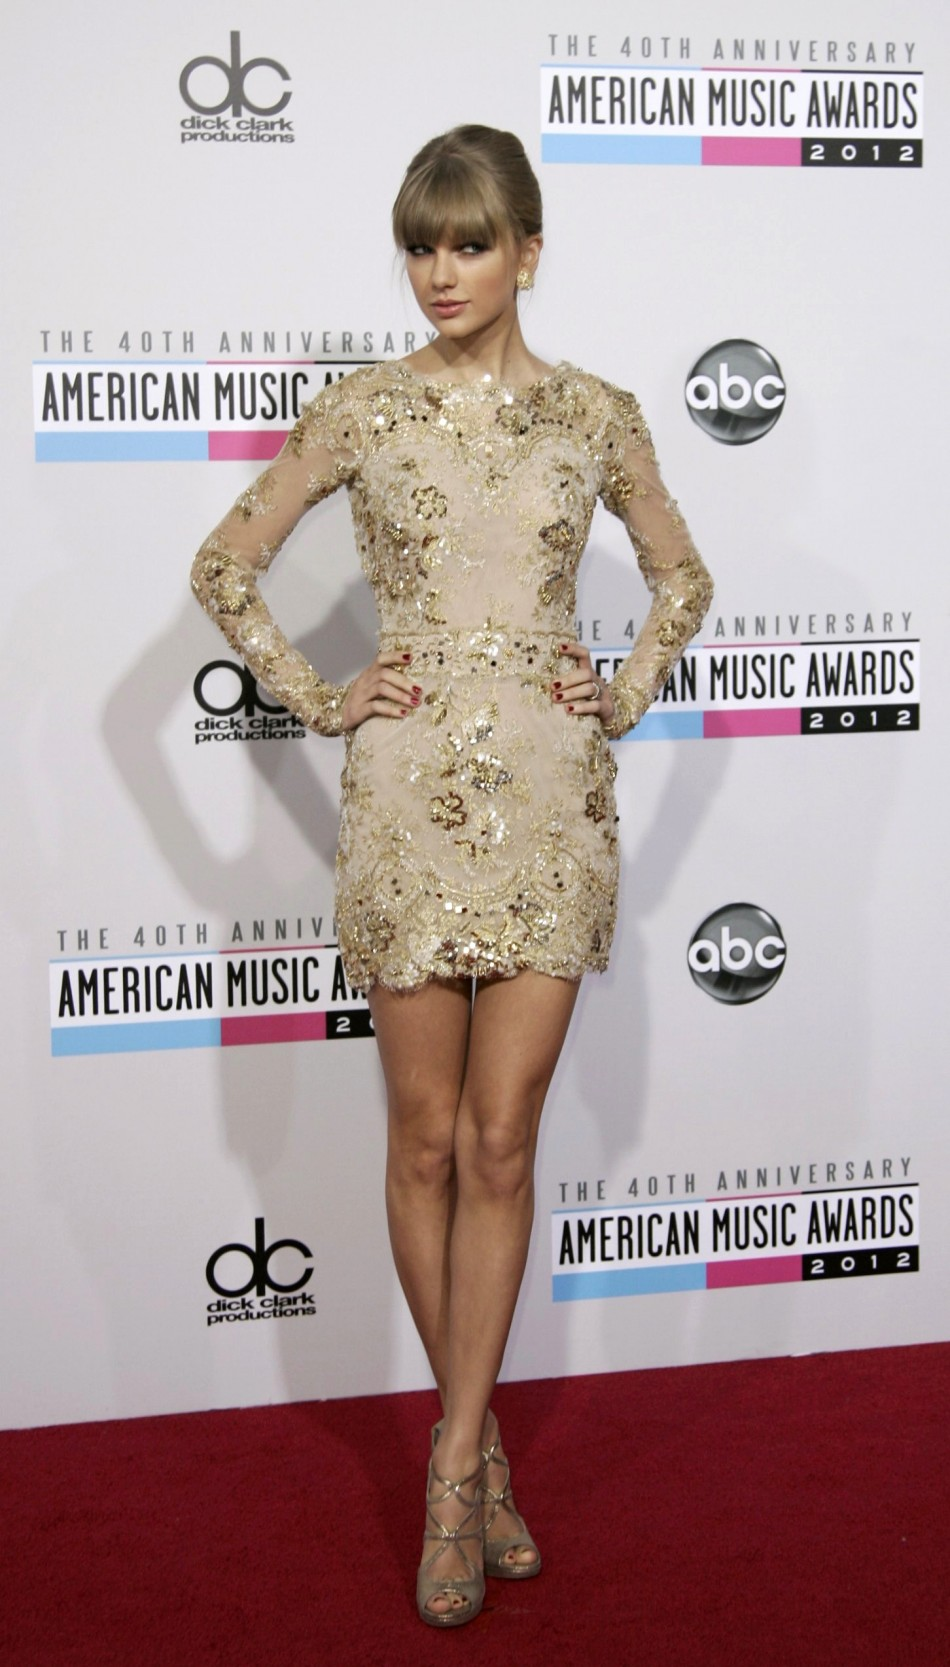 Singer Taylor Swift arrives at the 40th American Music Awards in Los Angeles